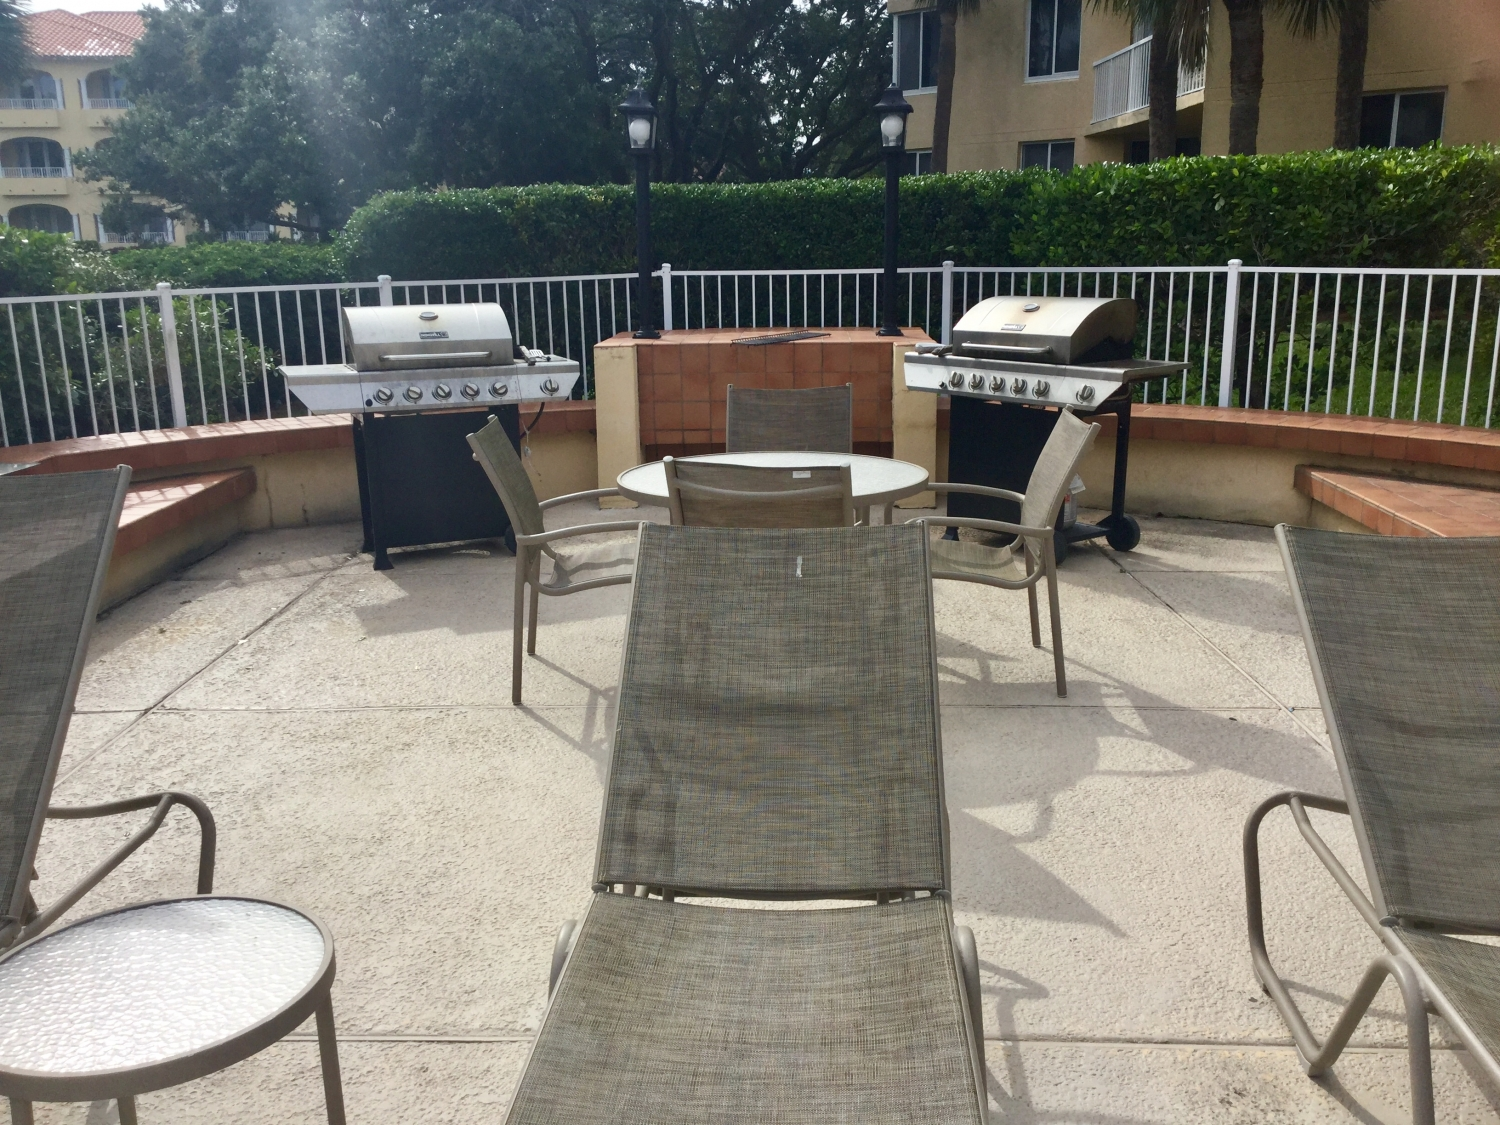 Grilling area located pool side